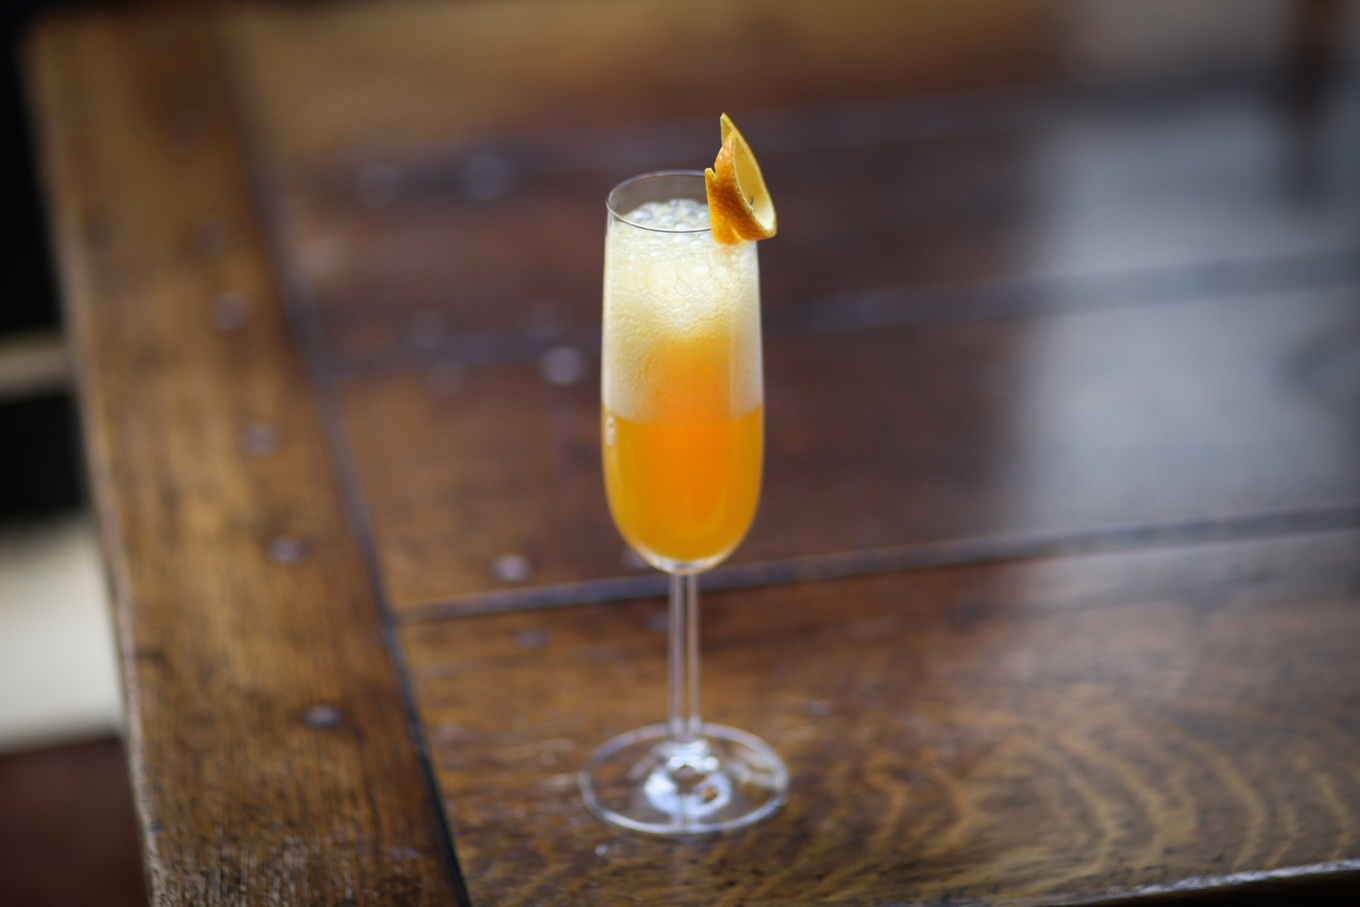 Buck's Fizz & Mimosa Cocktails – history & recipes image 1